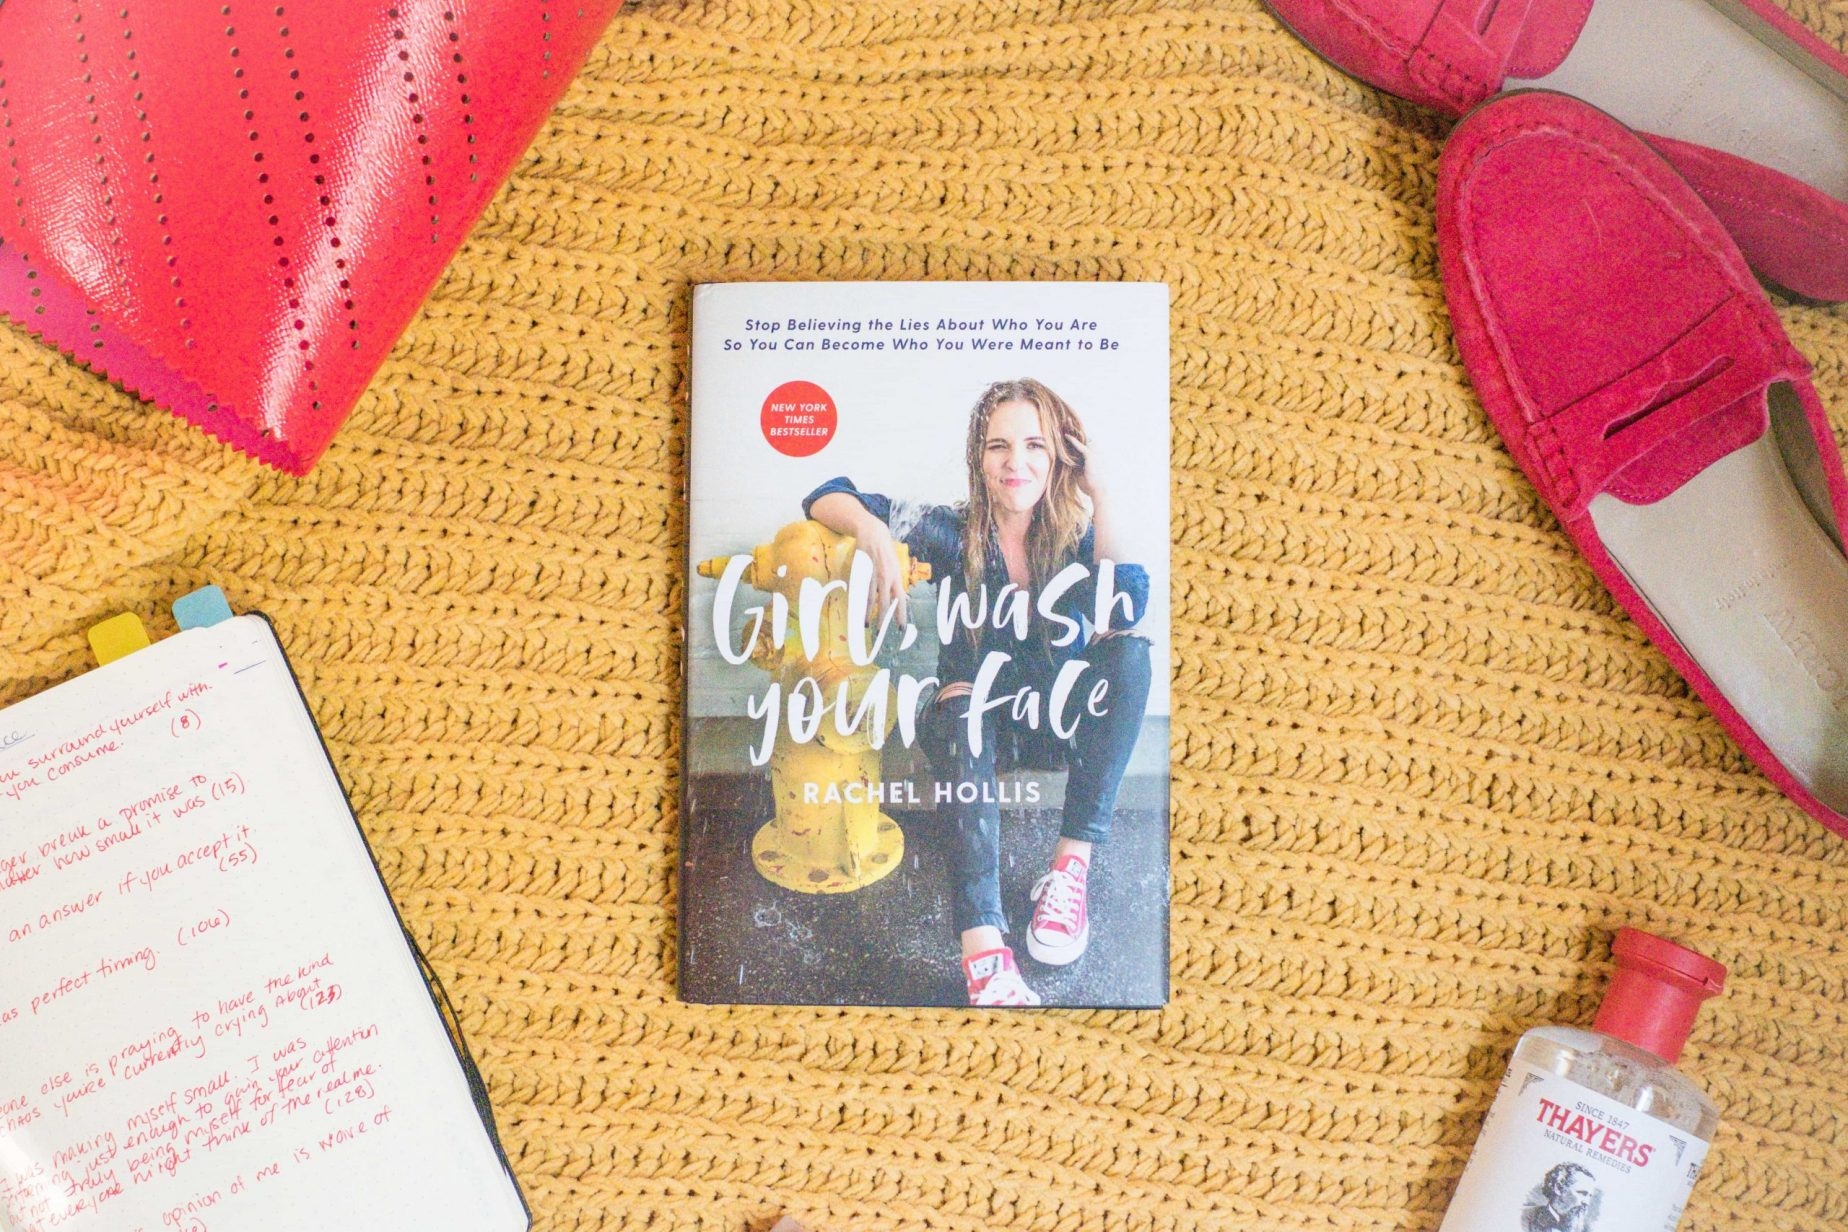 Girl, Wash Your Face- My Review Of What I Learned & Why I'm Obsessed #whatsavvysaid #girlwashyourface #bookreview #ontheblogtoday #rachelhollis #bookshelf #redbag #redshoes